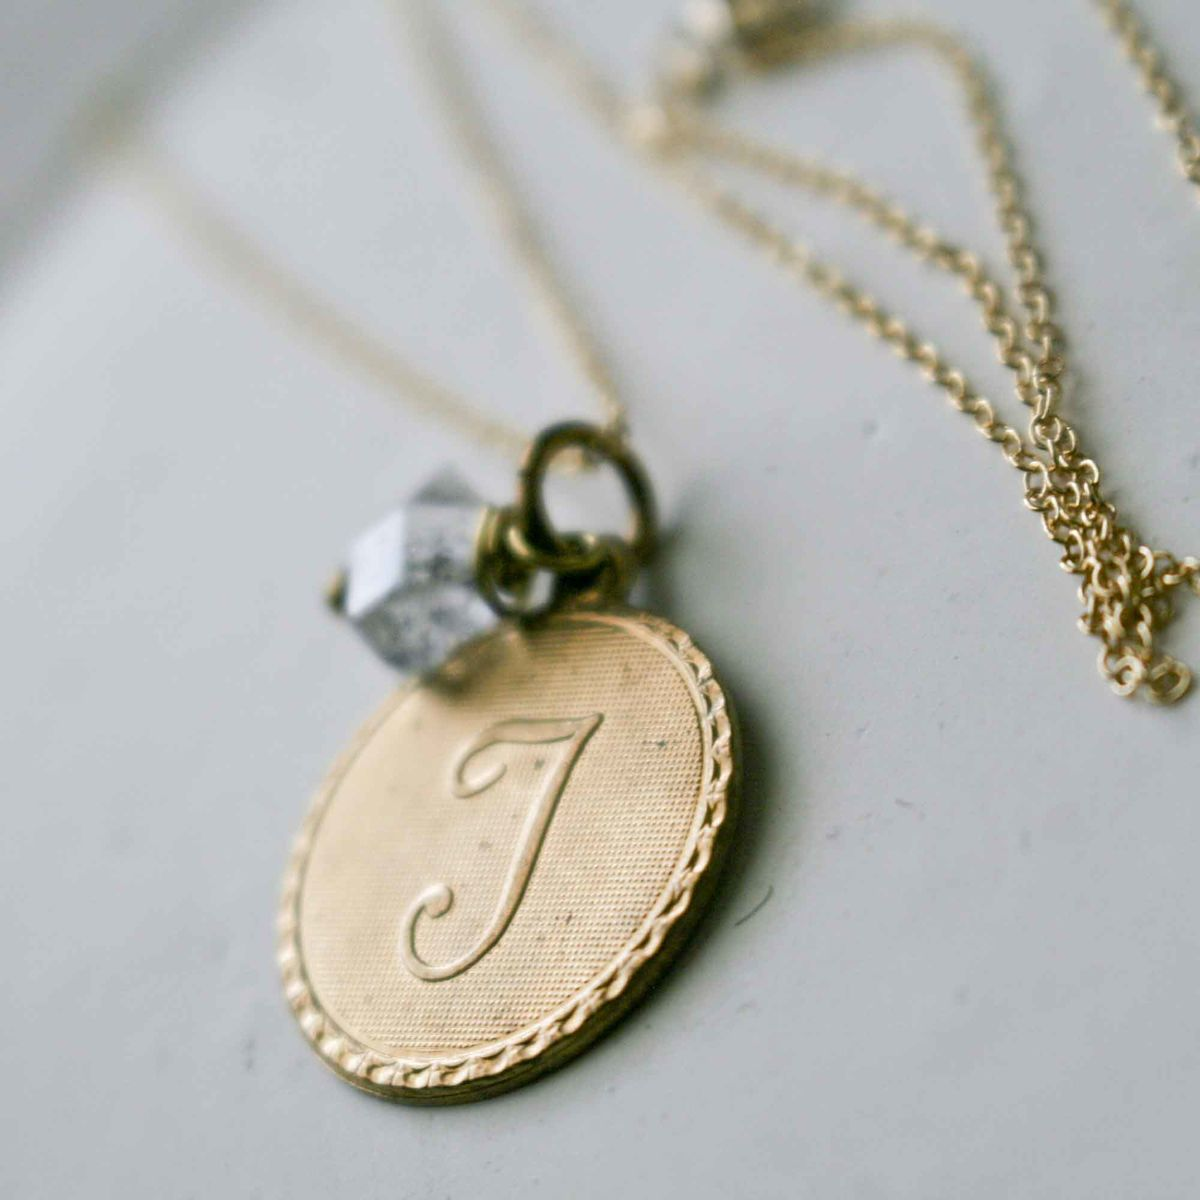 Uppercase Cursive Initial Monogram Letter Round Disc Charm Necklace - COMPLETE ALPHABET IS AVAILABLE - product image